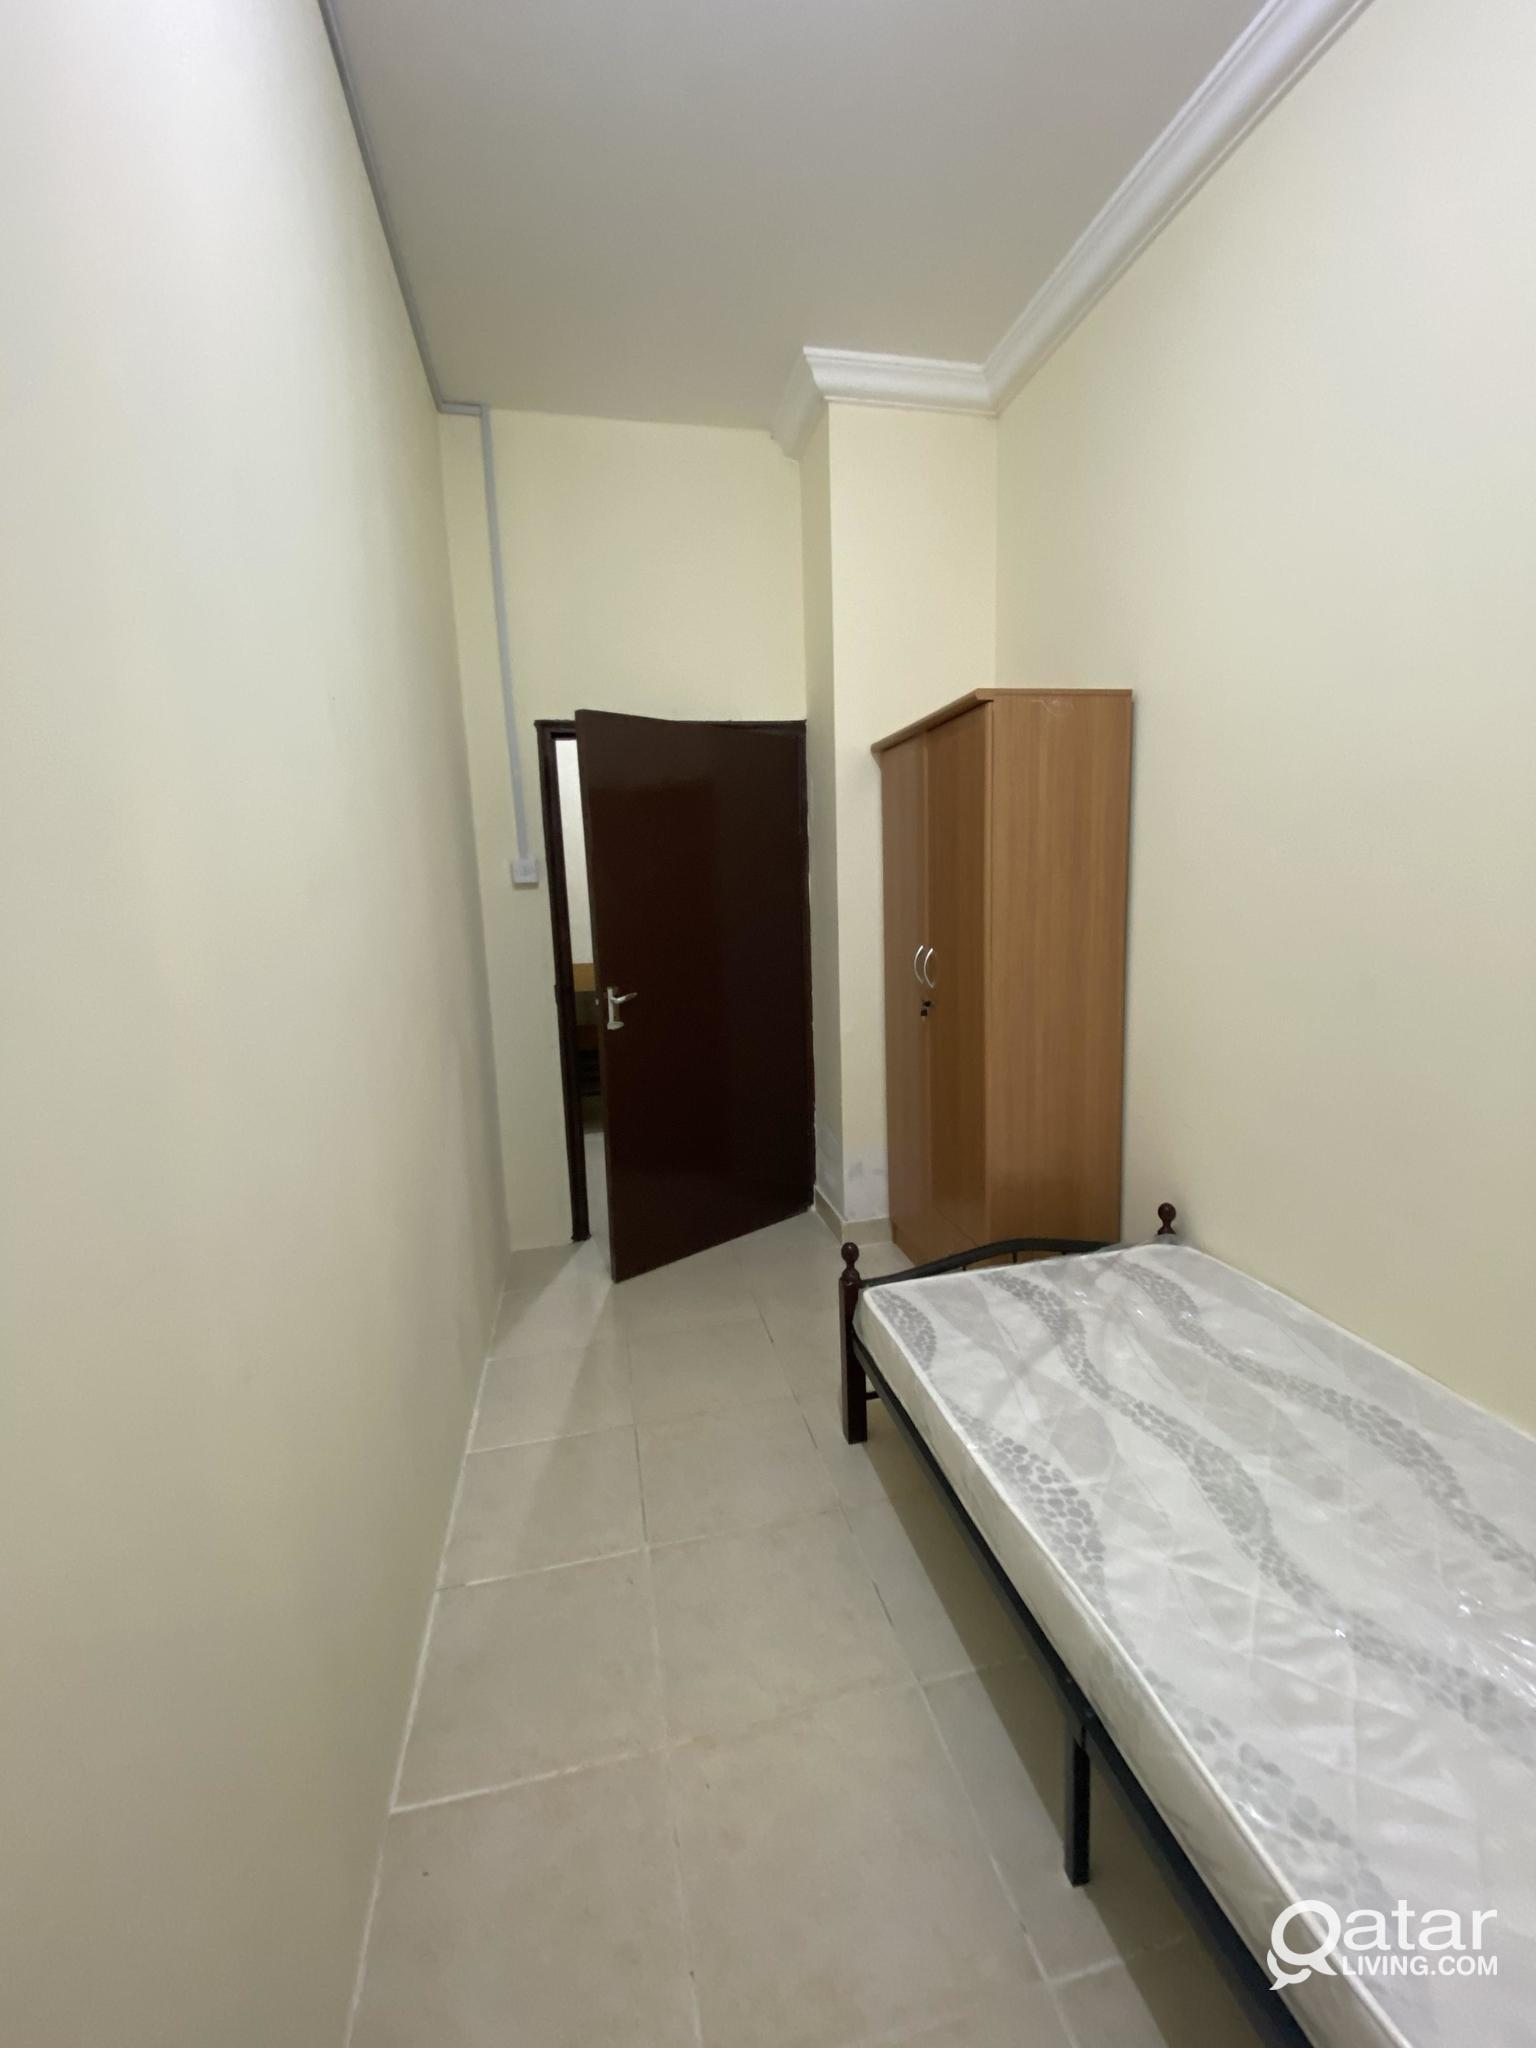 NEAT AND CLEAN FILIPINO SMALL ROOMS READY TO OCCUP